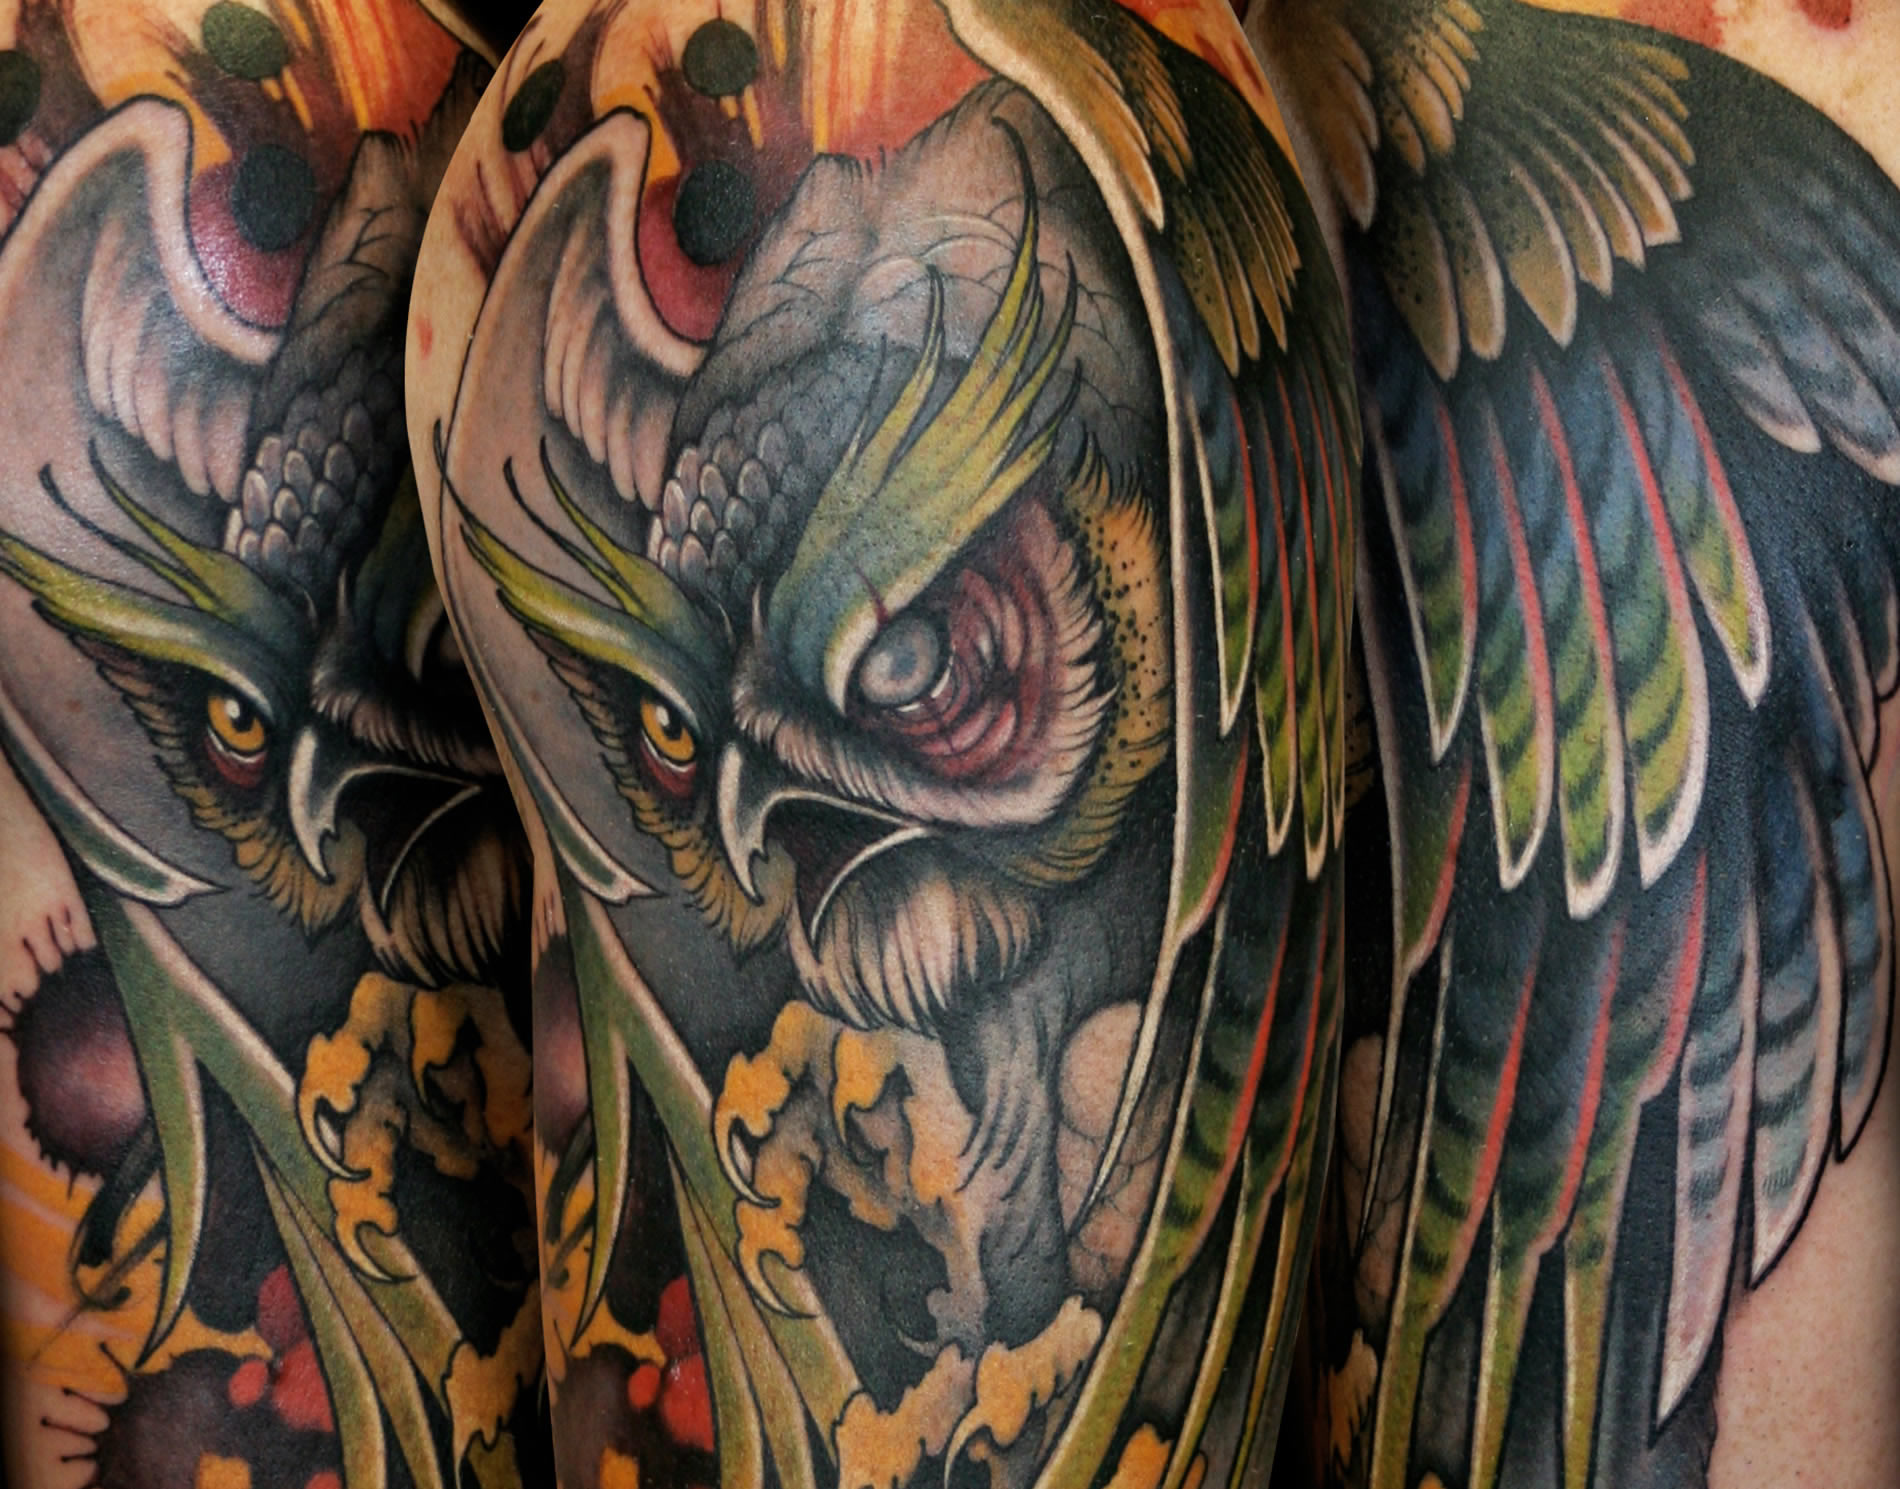 The Tattoos of Best Ink Winner, Teresa Sharpe